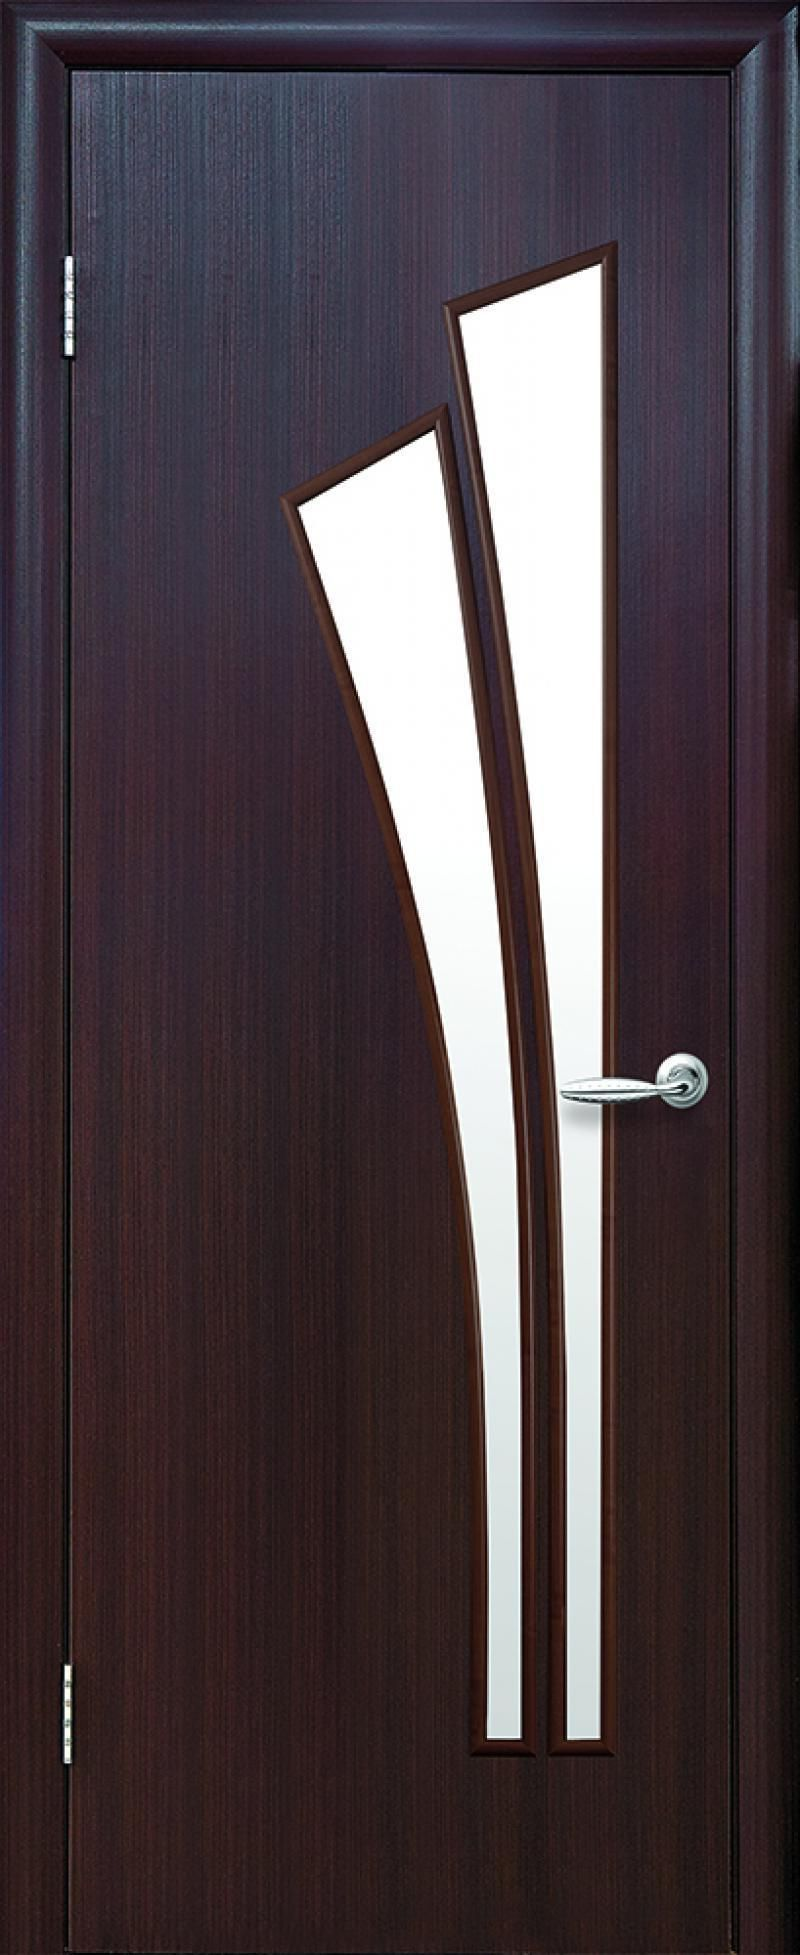 Modern interior door design for Bedroom door designs